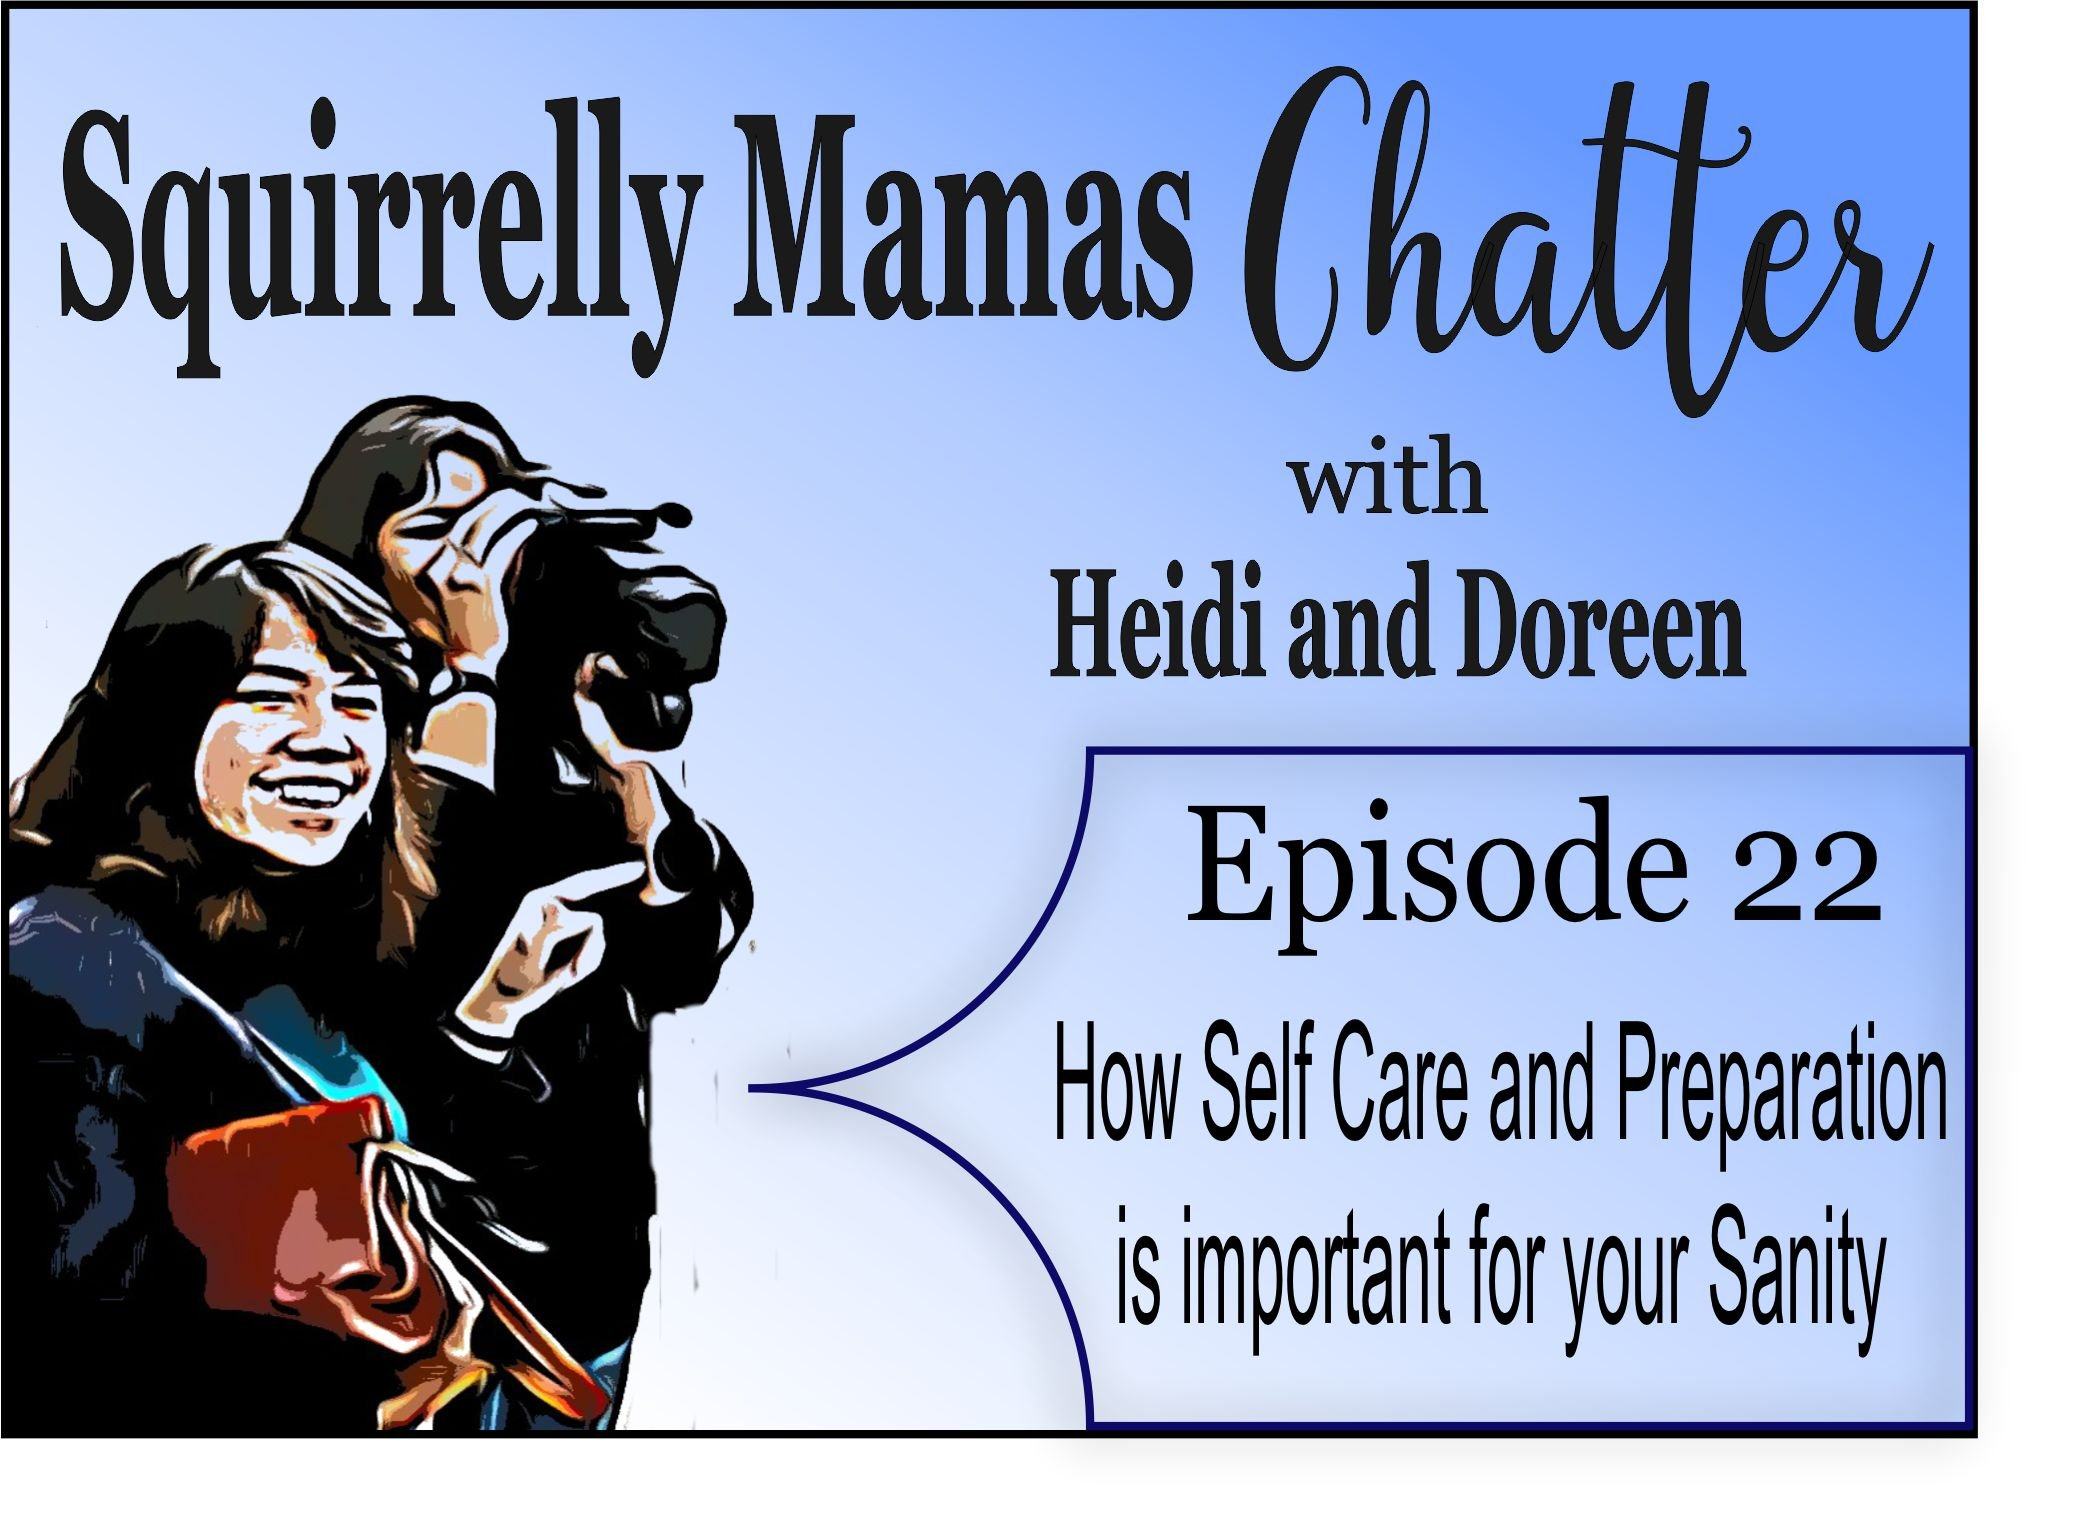 022 How Self Care and Preparation is important for your Sanity